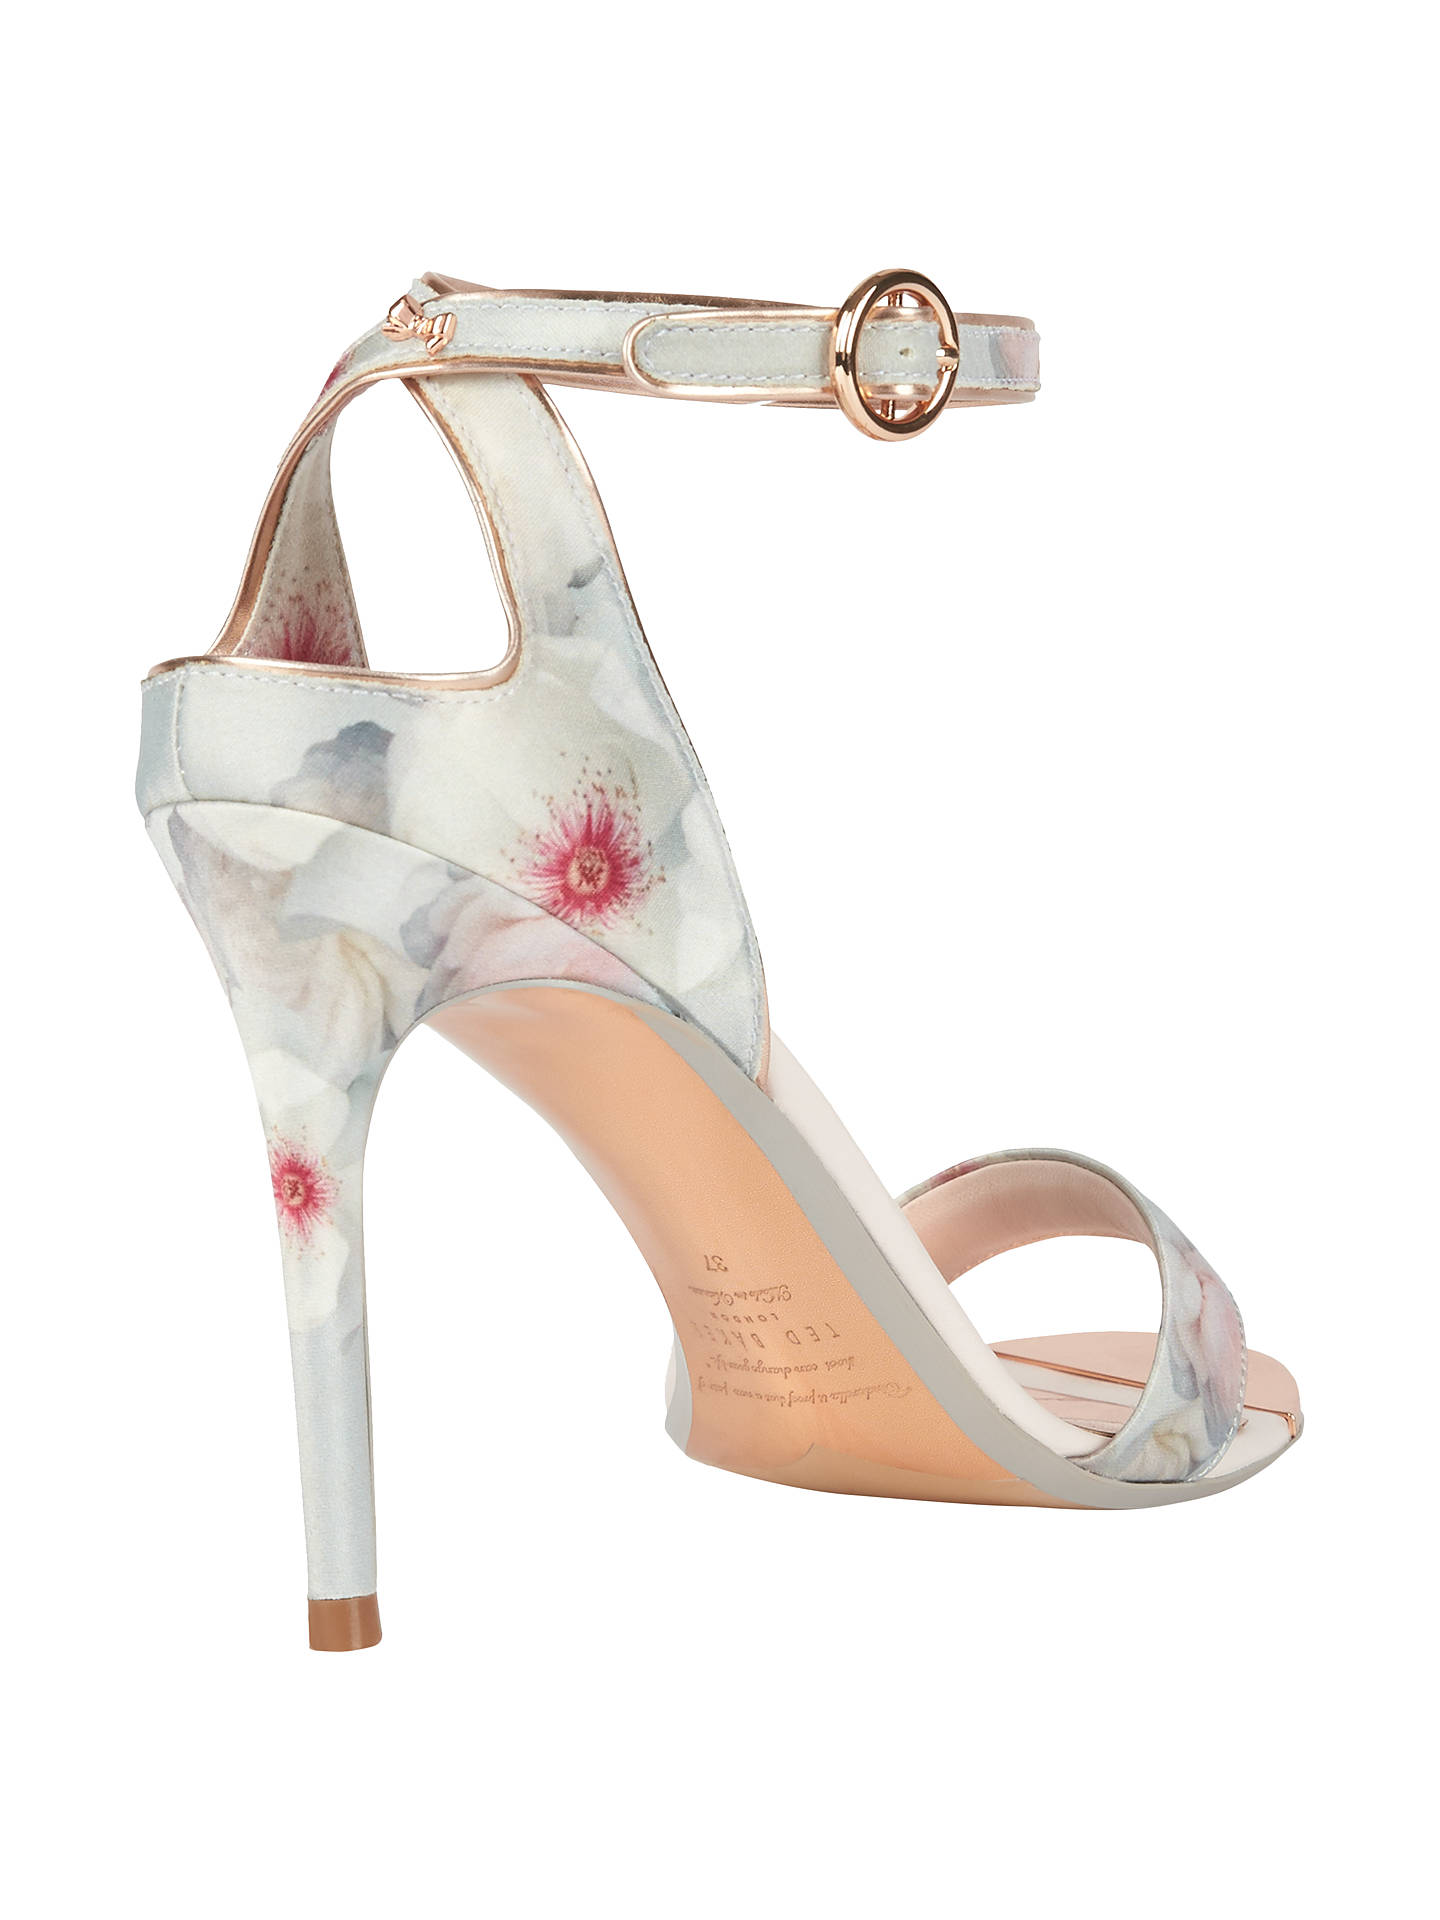 BuyTed Baker Mirobep Stiletto Heeled Sandals, Grey, 4 Online at johnlewis.com